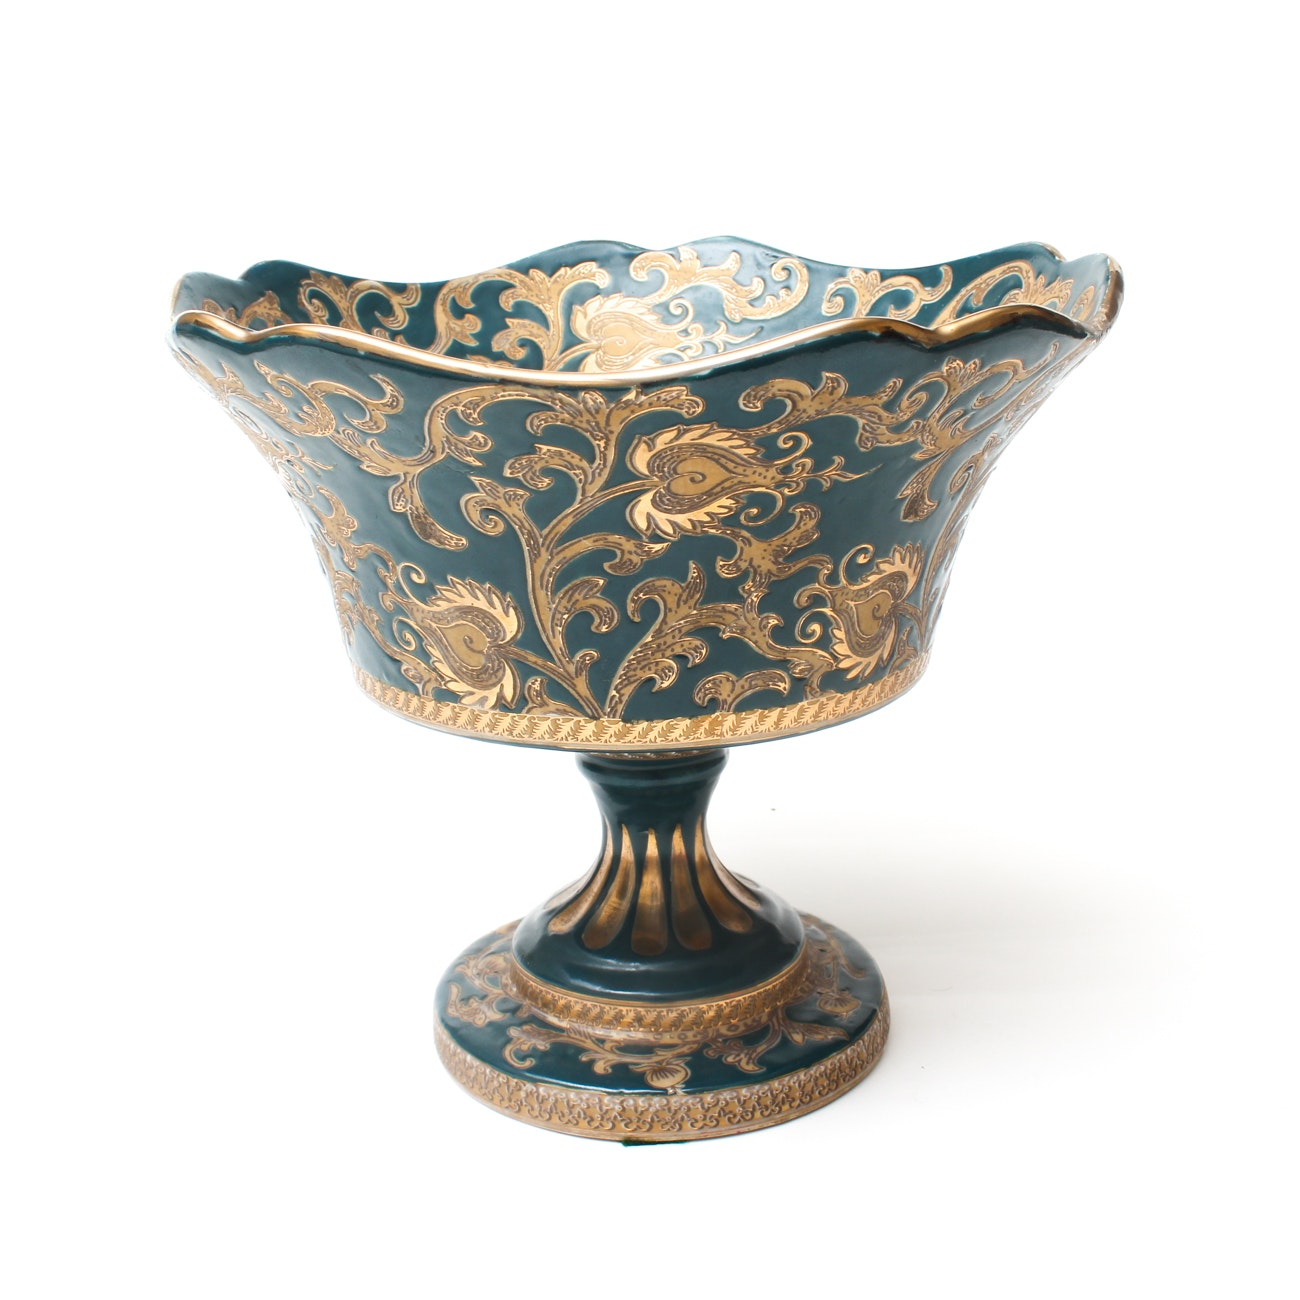 Chinese Decorative Porcelain Pedestal Bowl